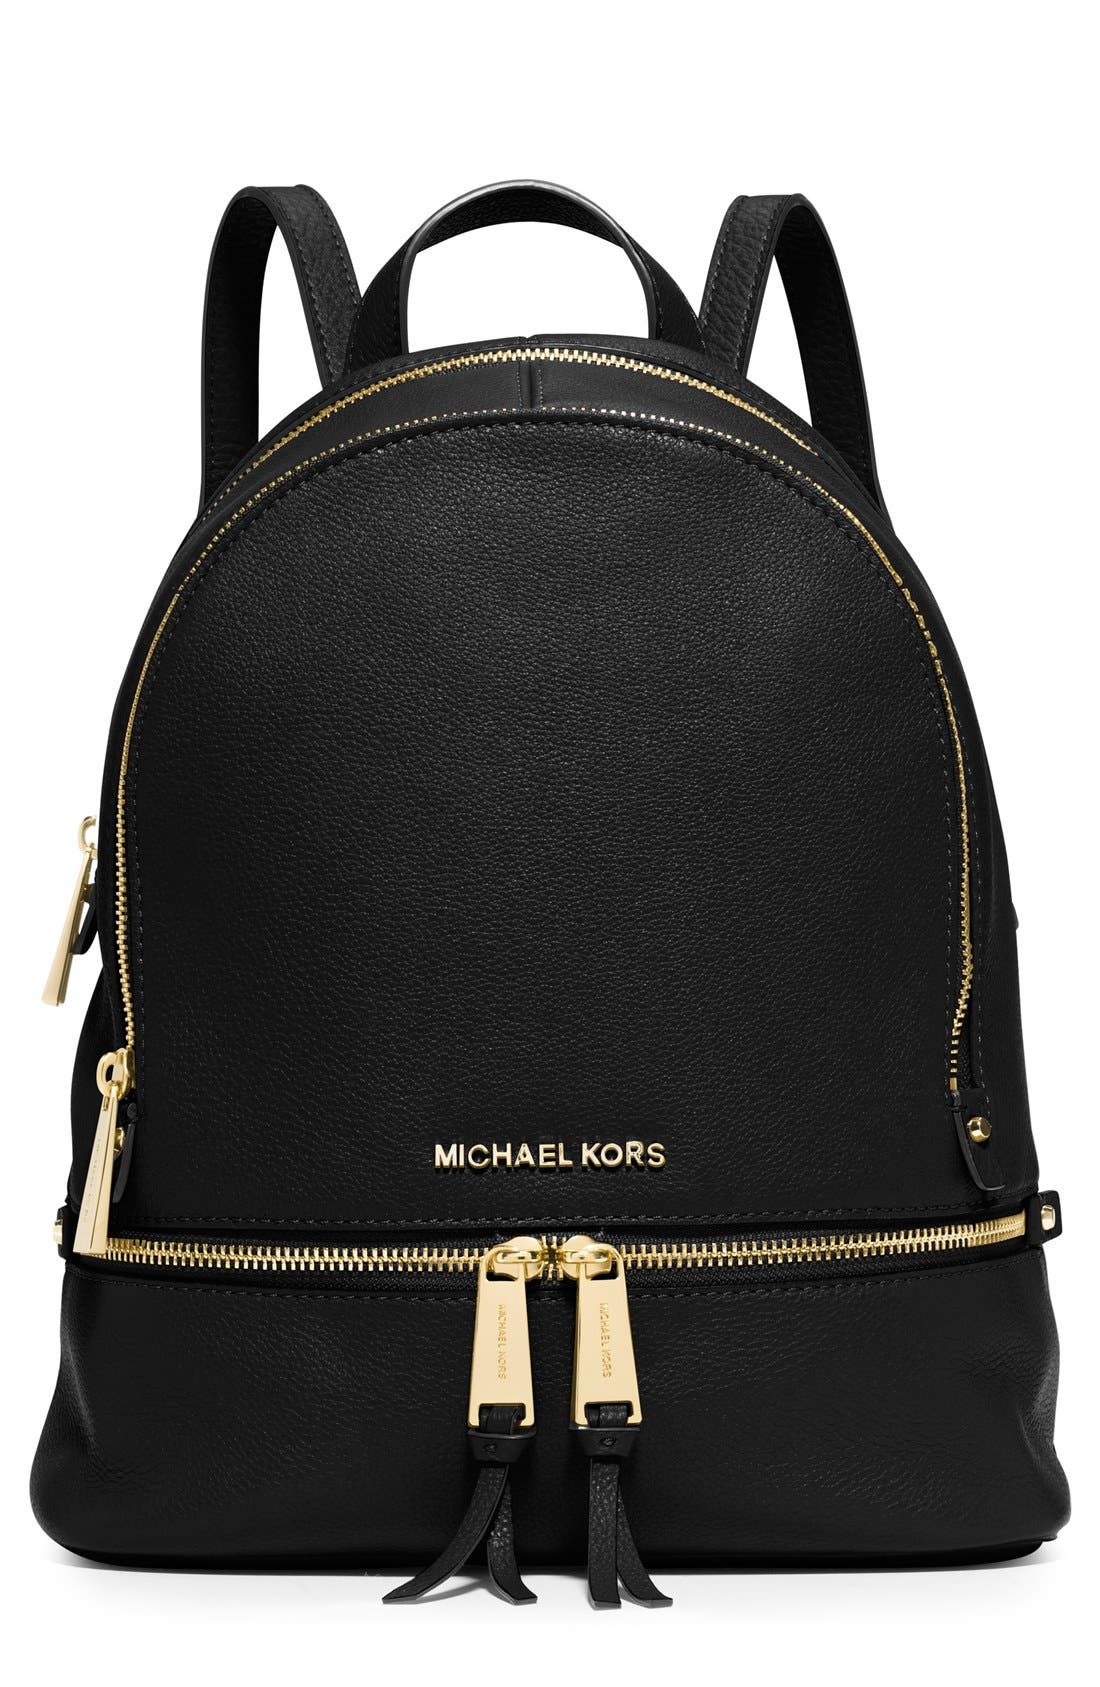 37ca312d07 Michael Kors  Women s Clothing